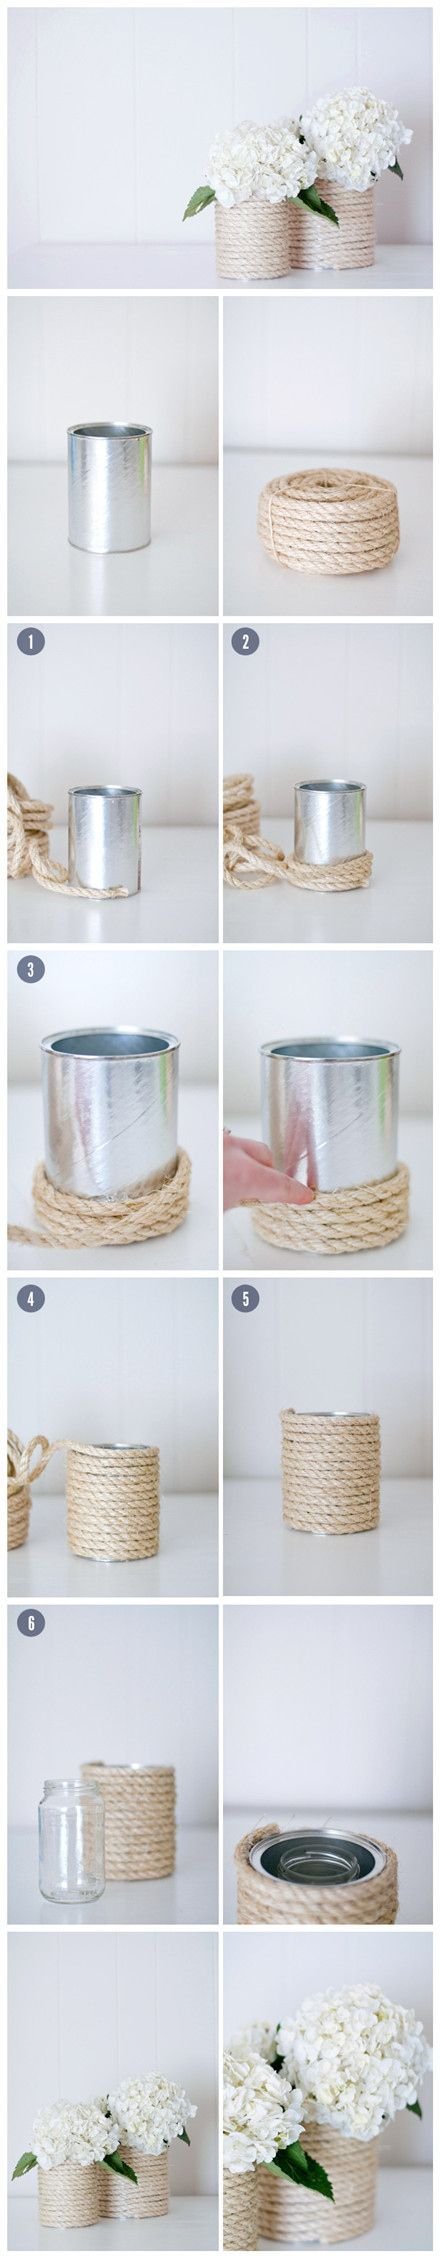 Rope Vase / 33 DIY Gifts You Can Make In Less Than An Hour (via BuzzFeed)